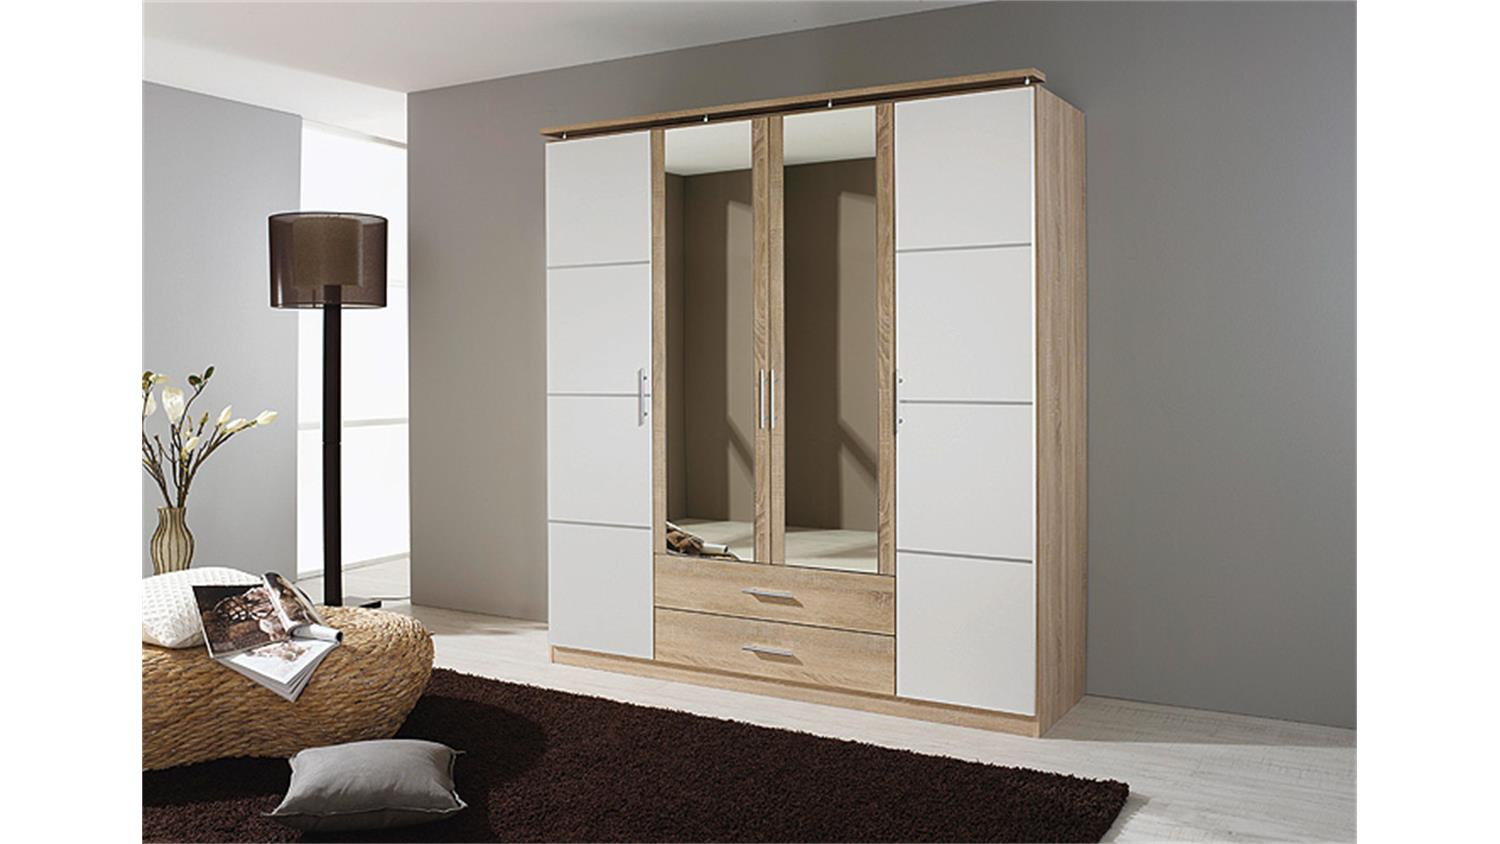 kleiderschrank micro wei sonoma eiche mit spiegel 181 cm. Black Bedroom Furniture Sets. Home Design Ideas